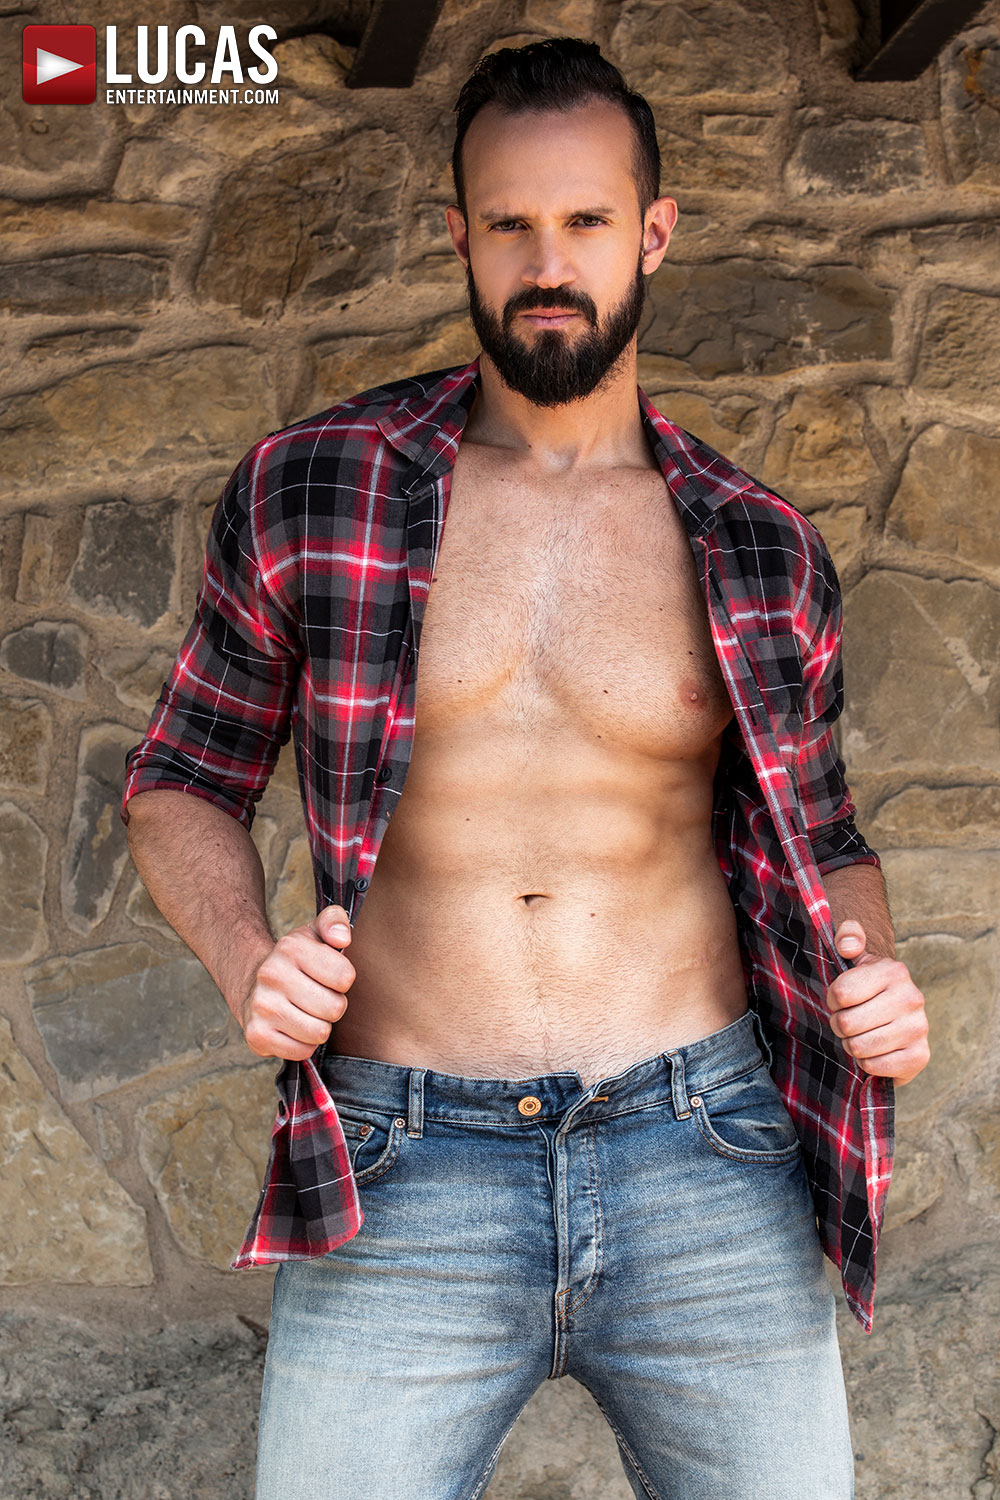 Andy Onassis - Gay Model - Lucas Entertainment